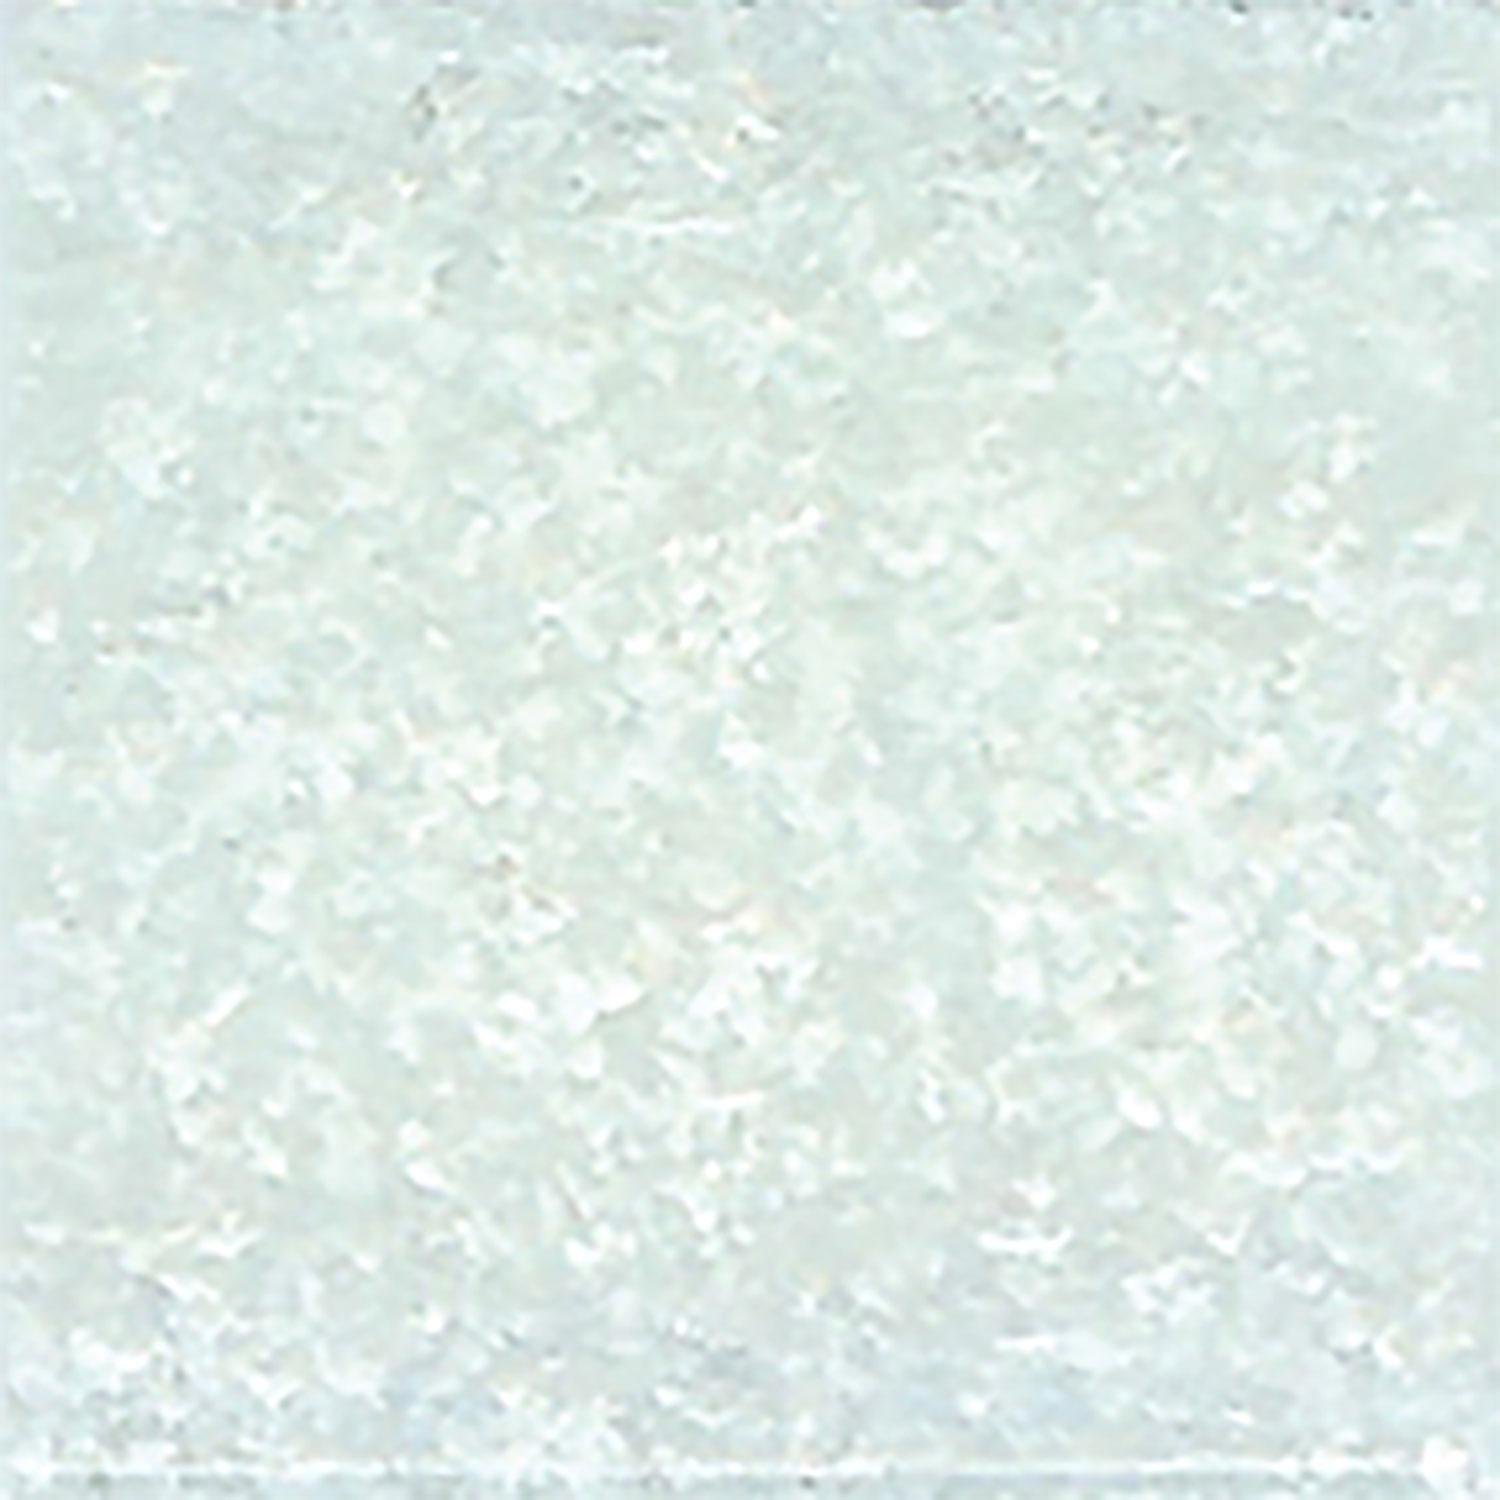 3/4 Quartz Venetian Glass Tile - 2.2 Lb